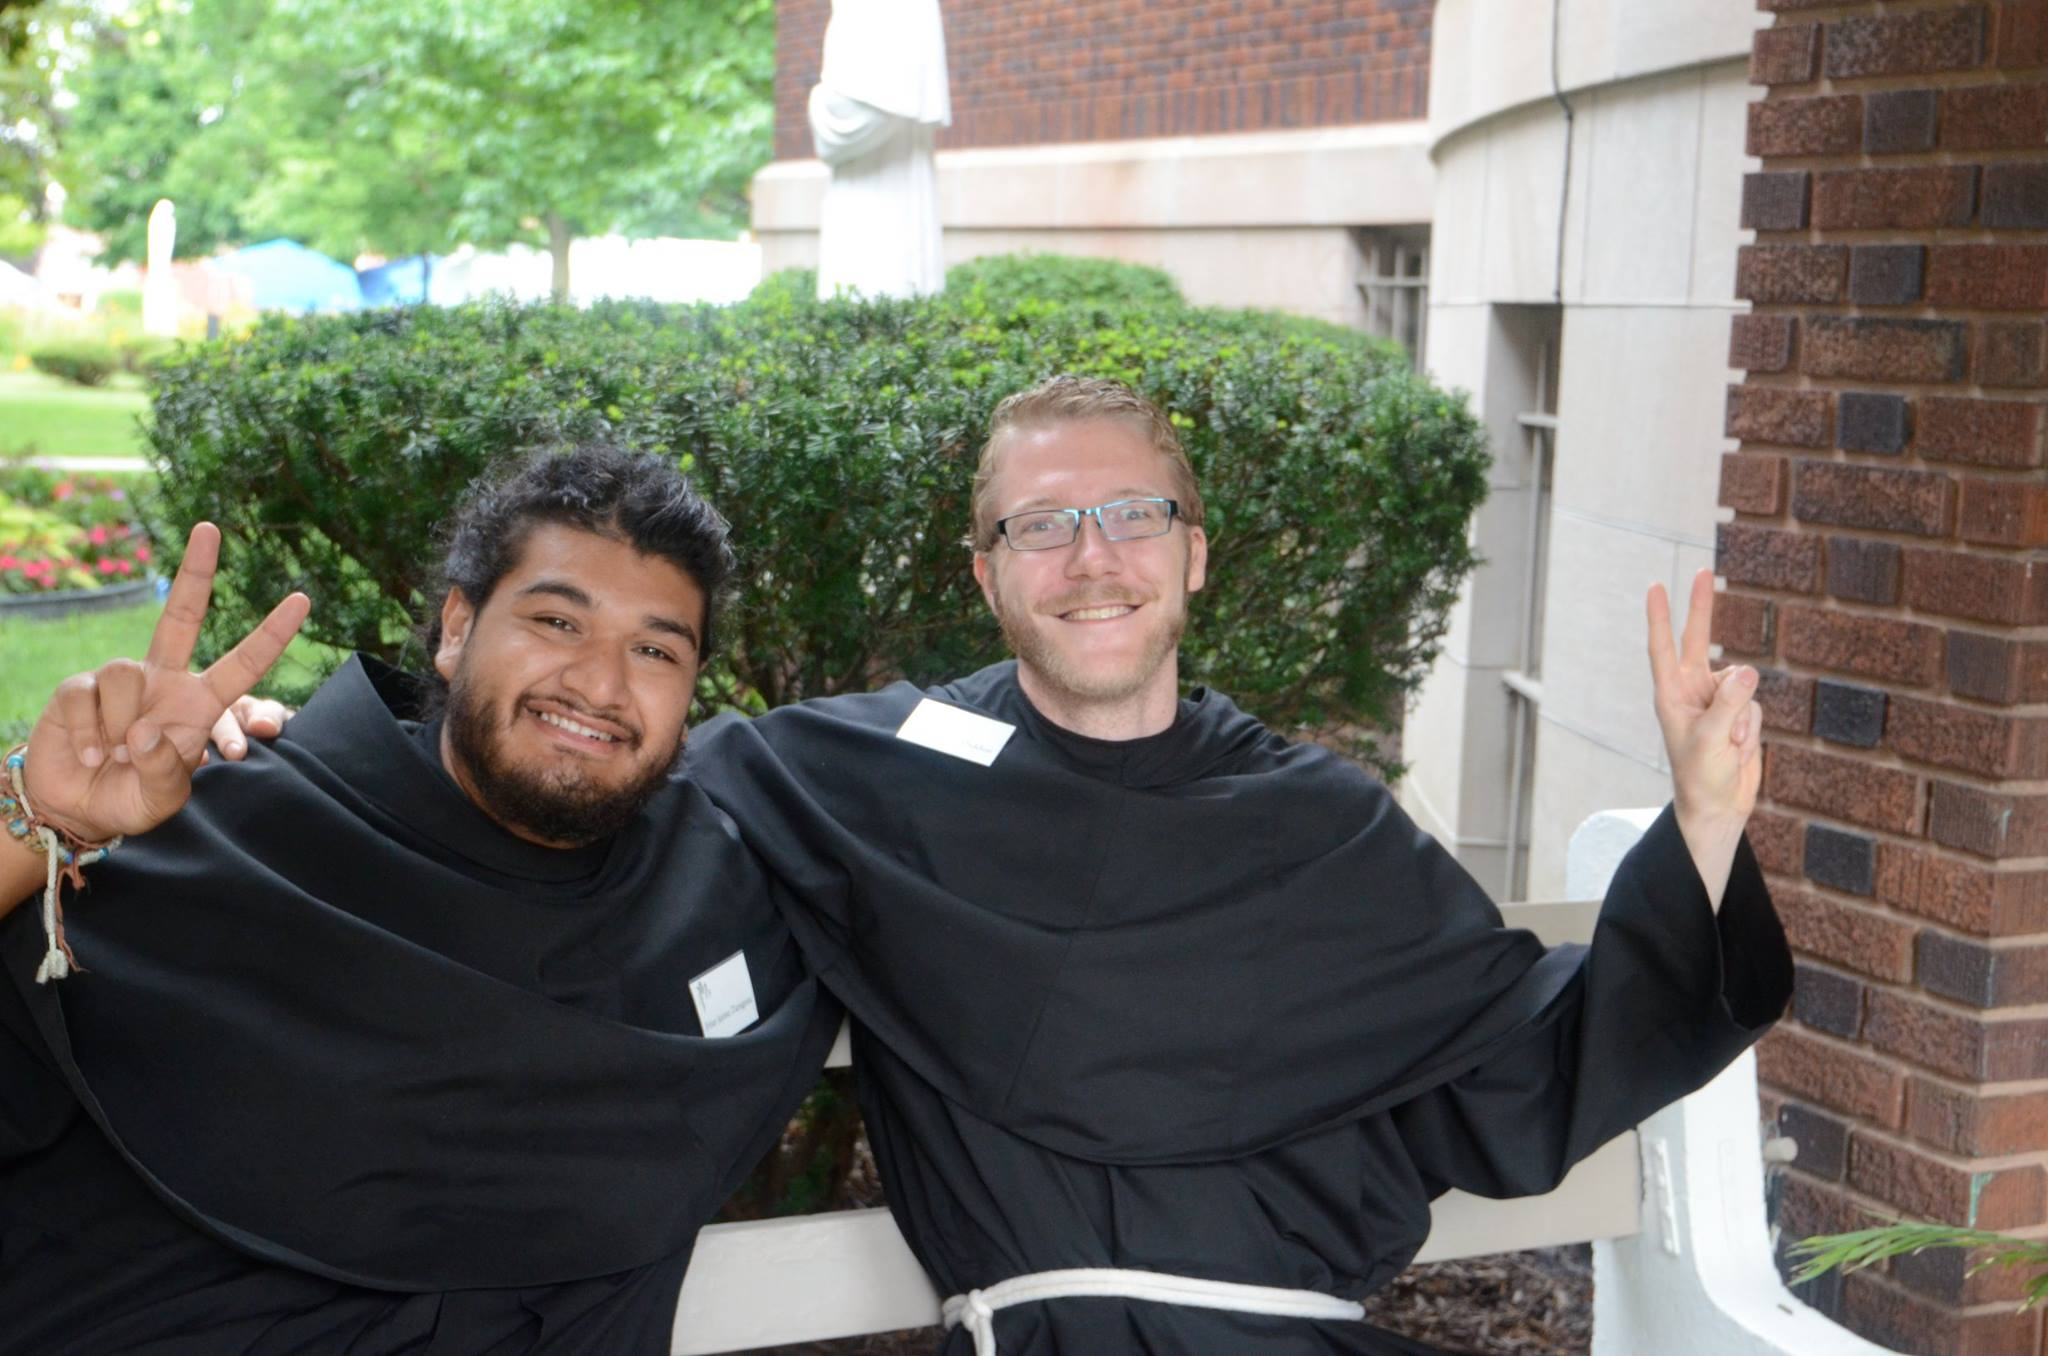 friars Jaime and Marco